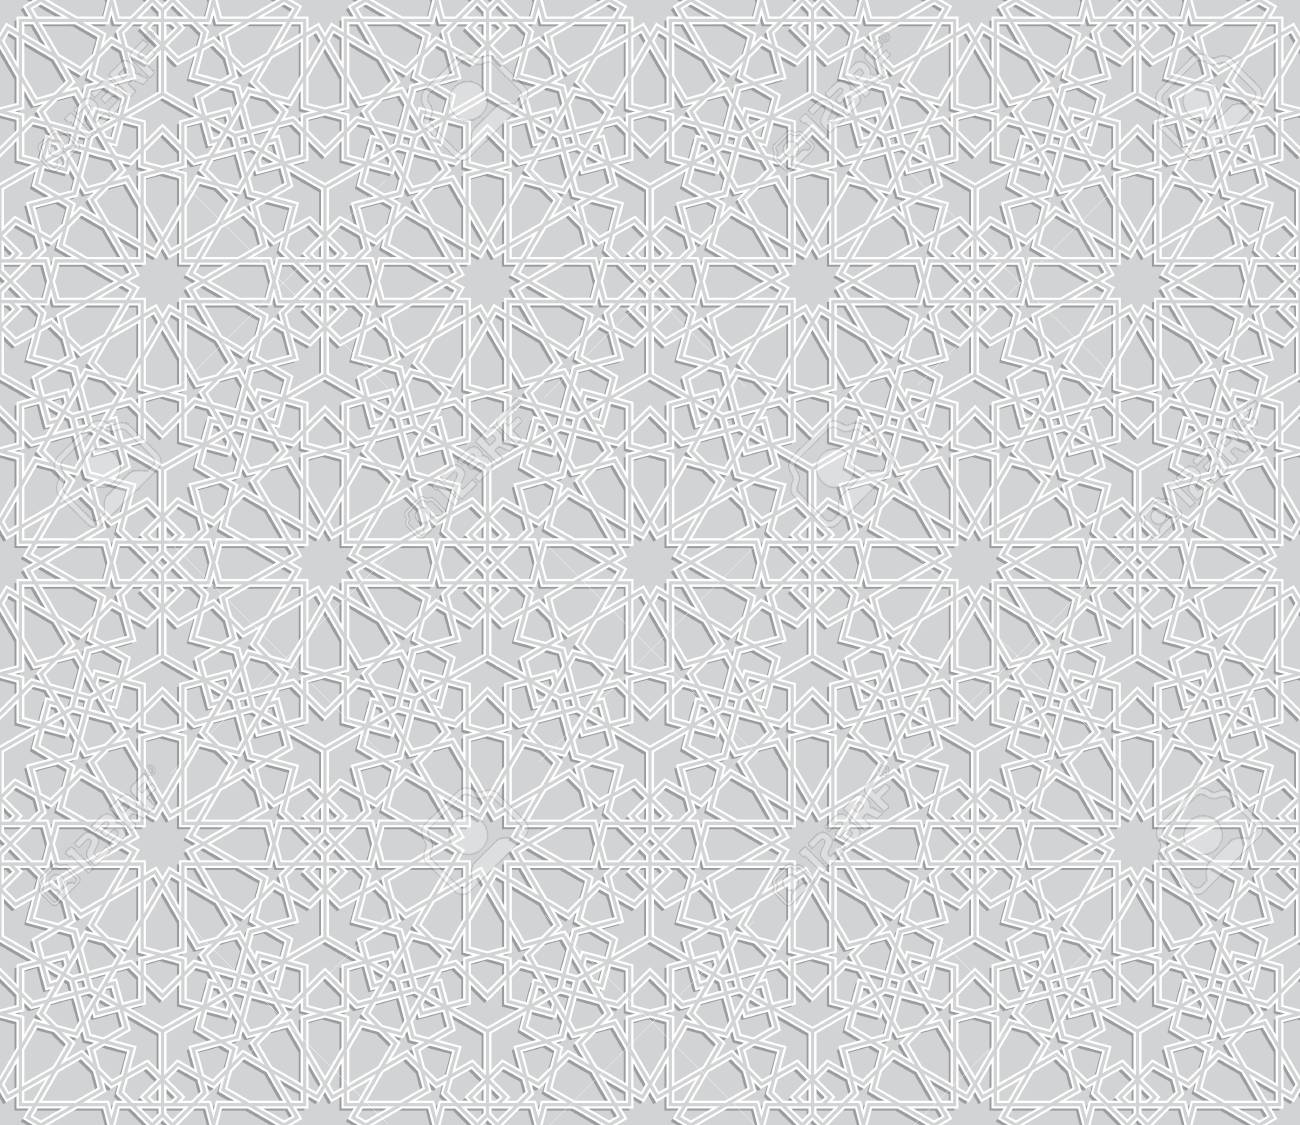 Awesome Love Quotes Hd Wallpapers Islamic Background Art Beautiful Image Islamic